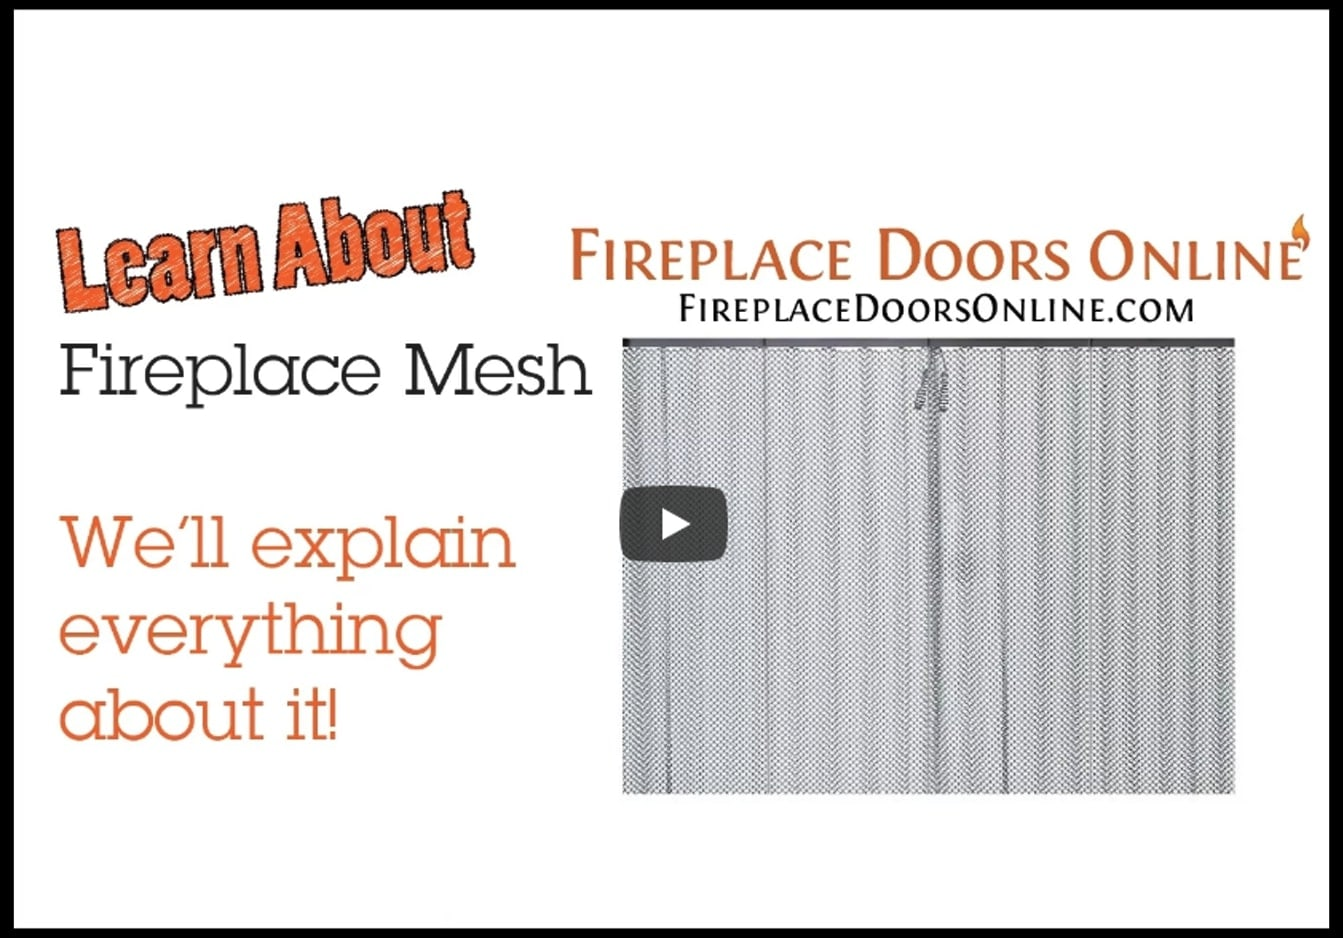 All About Fireplace Mesh